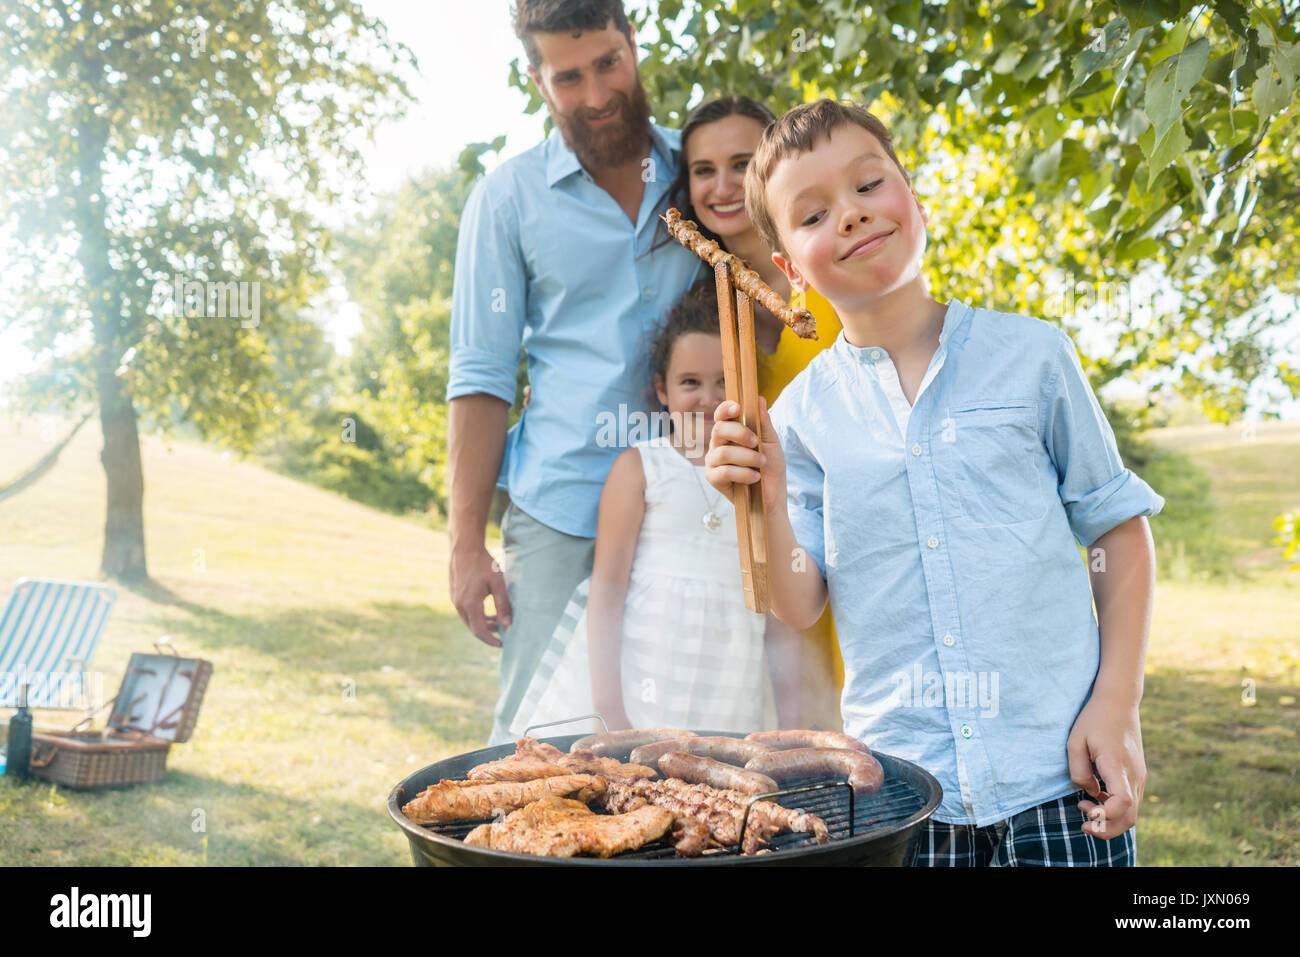 Portrait of happy family with two children standing outdoors nea - Stock Image